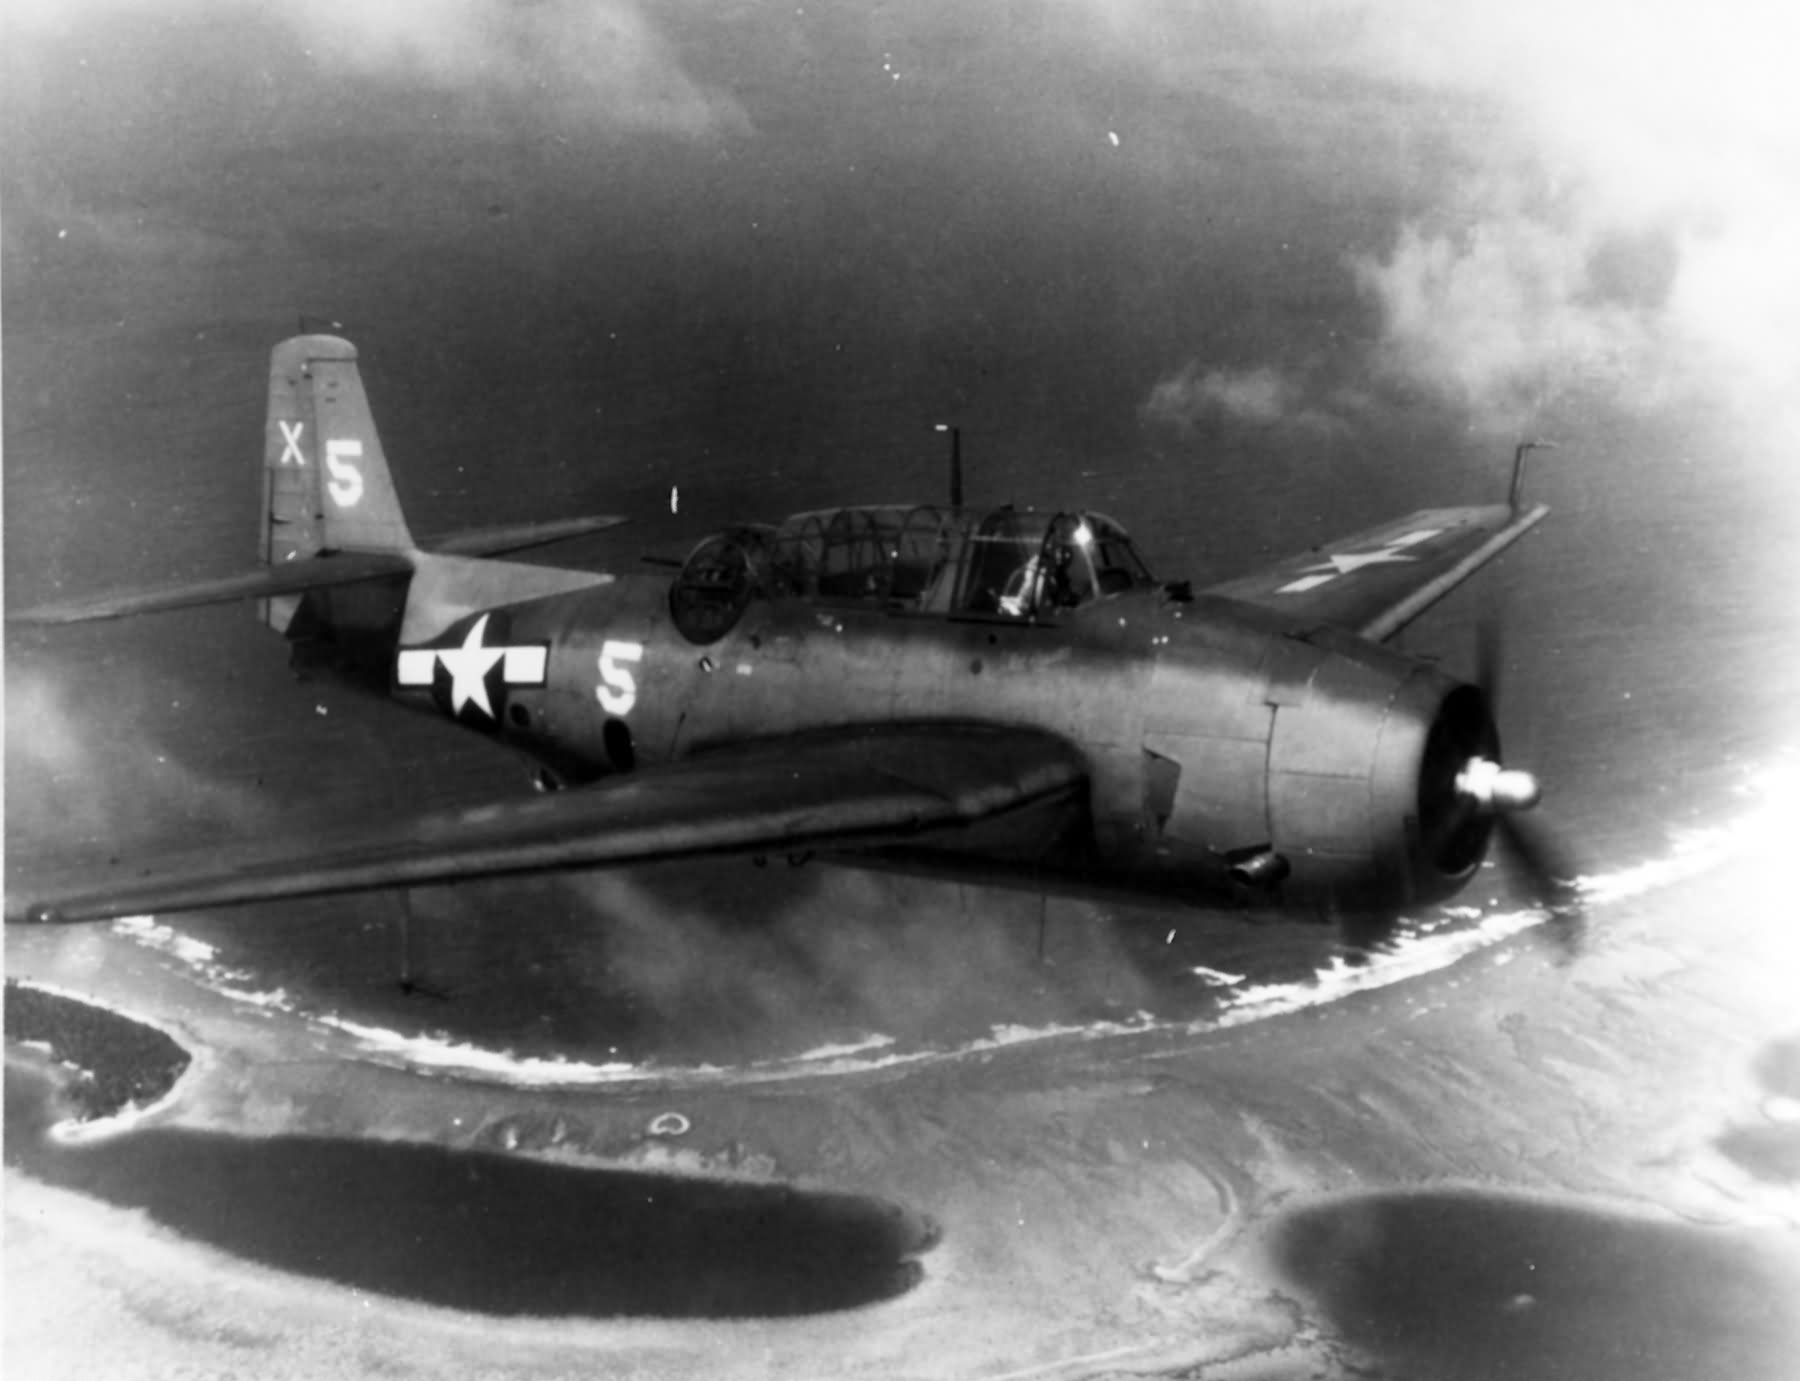 Grumman TBM-1C Avenger torpedo bomber in 1944. US Navy Photo